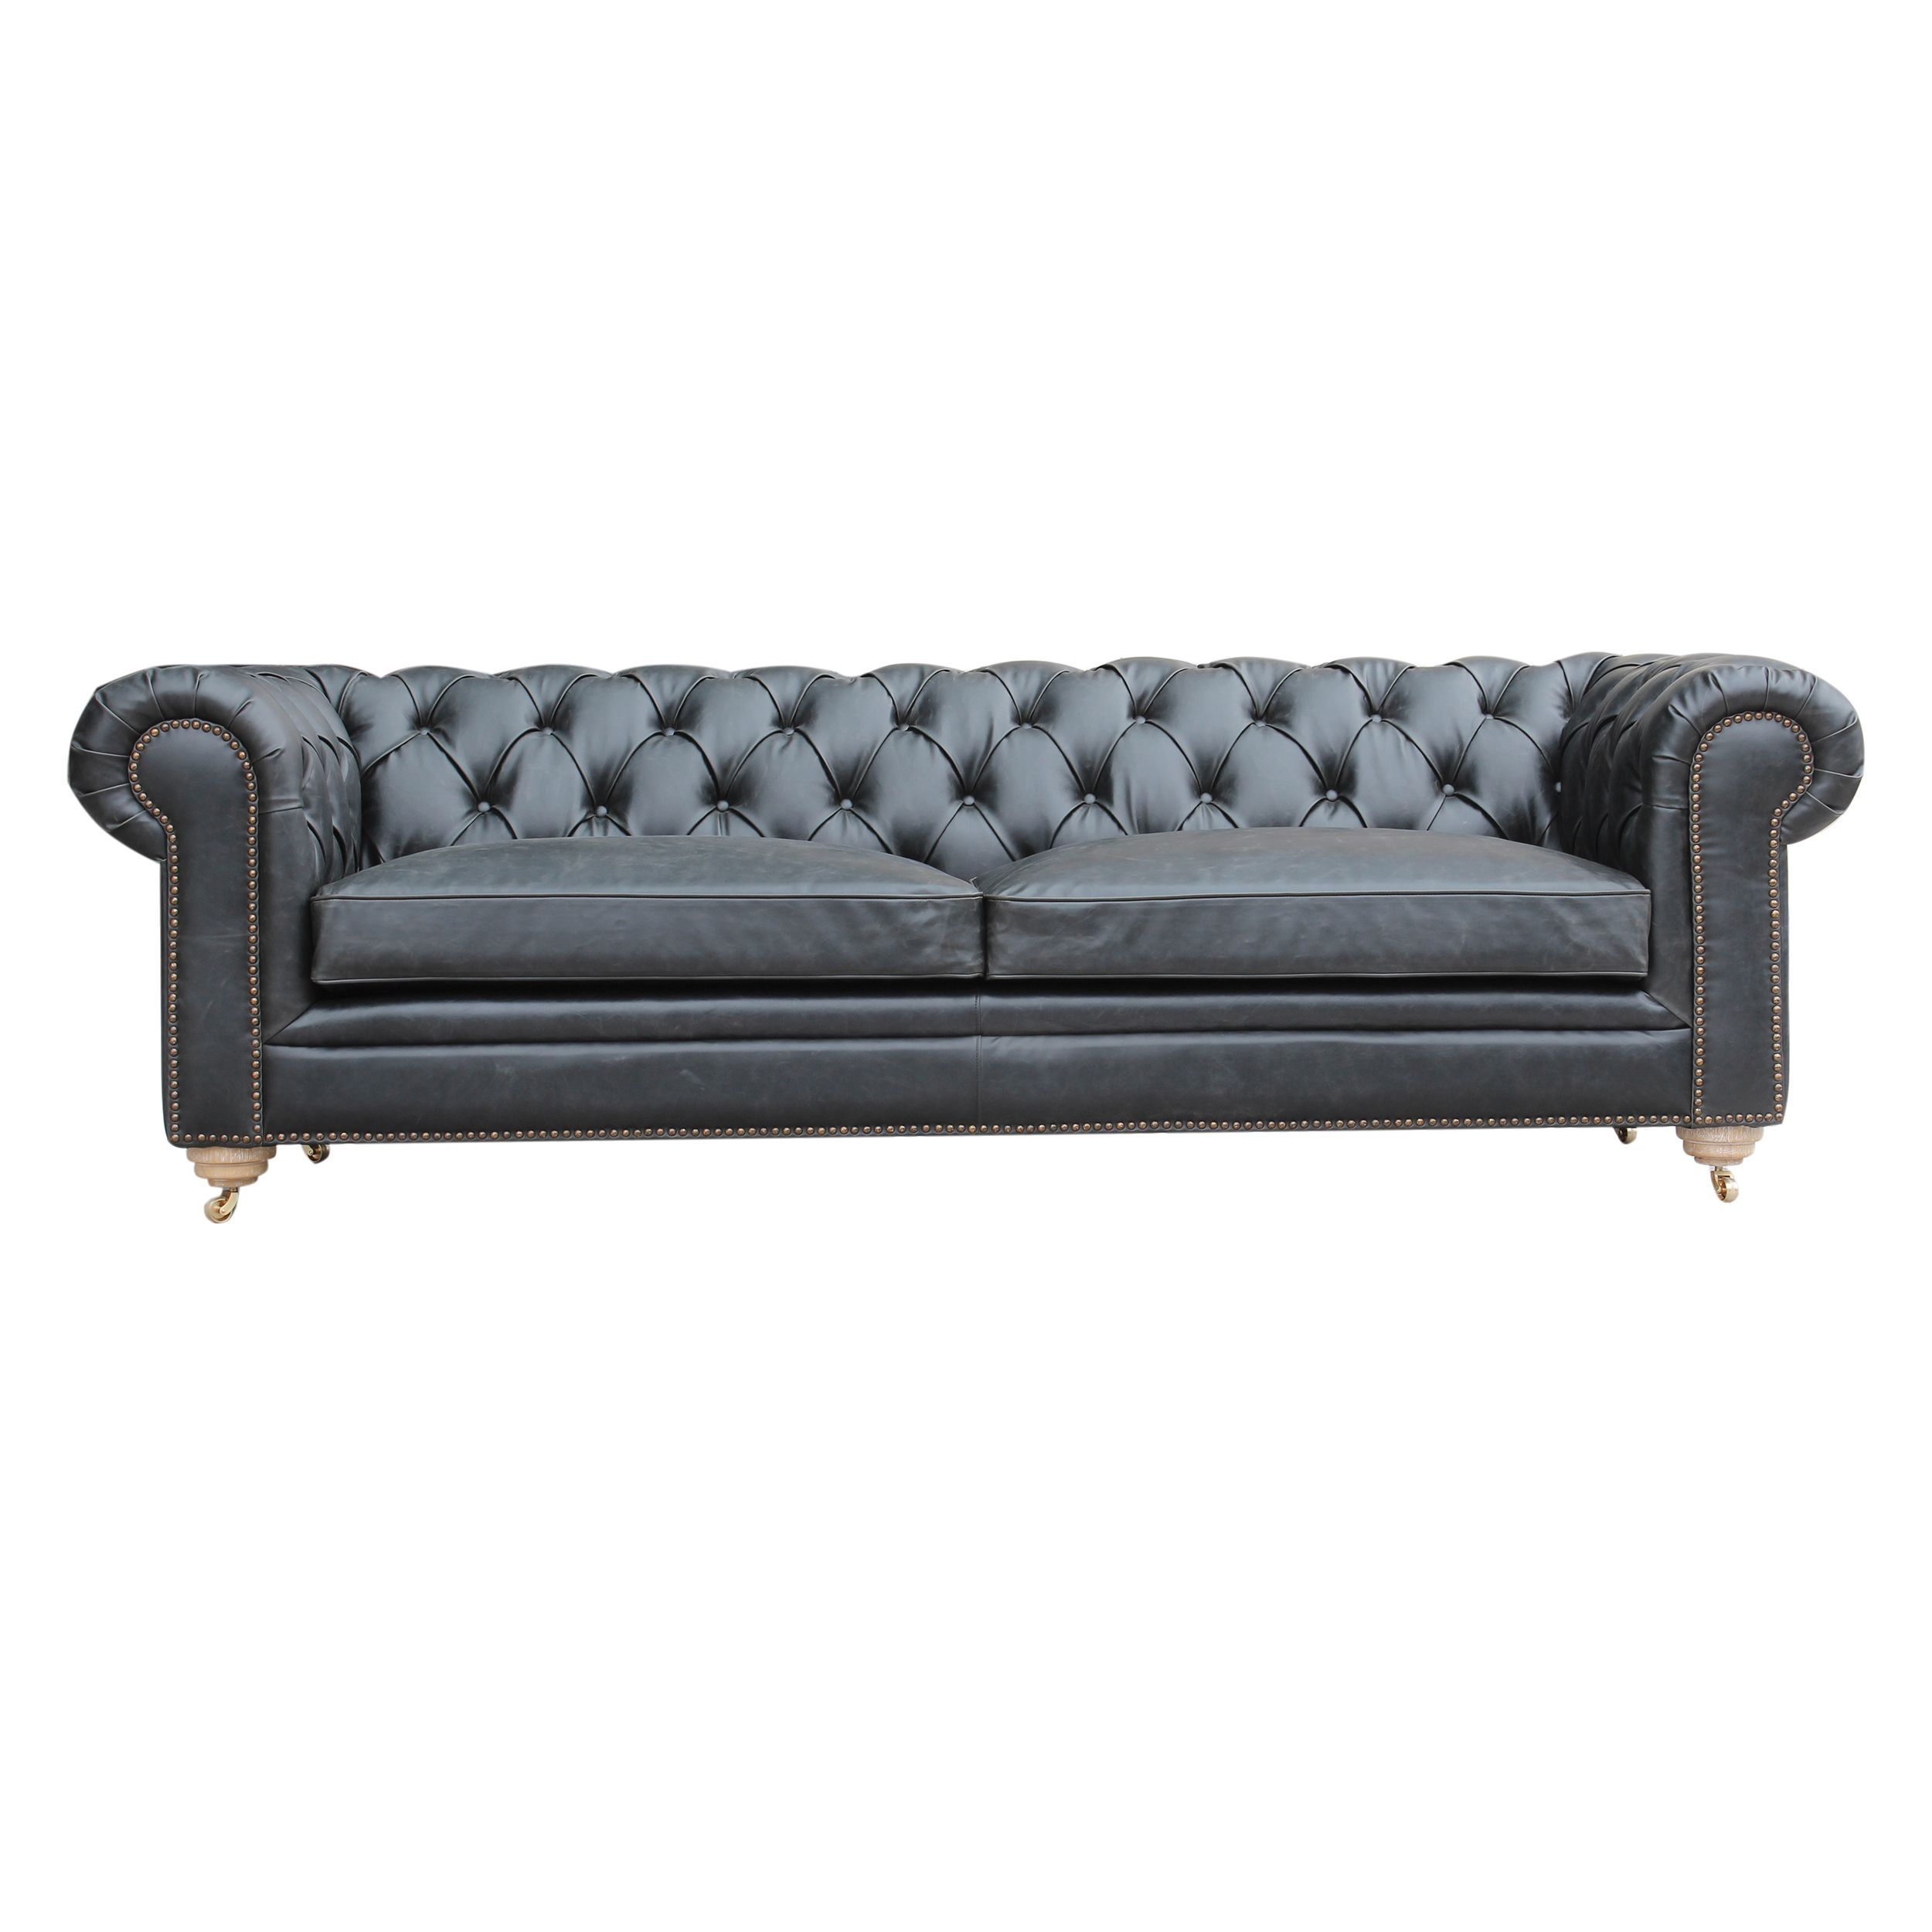 Caribou dane chesterfield black tufted sofa sf513711 birch